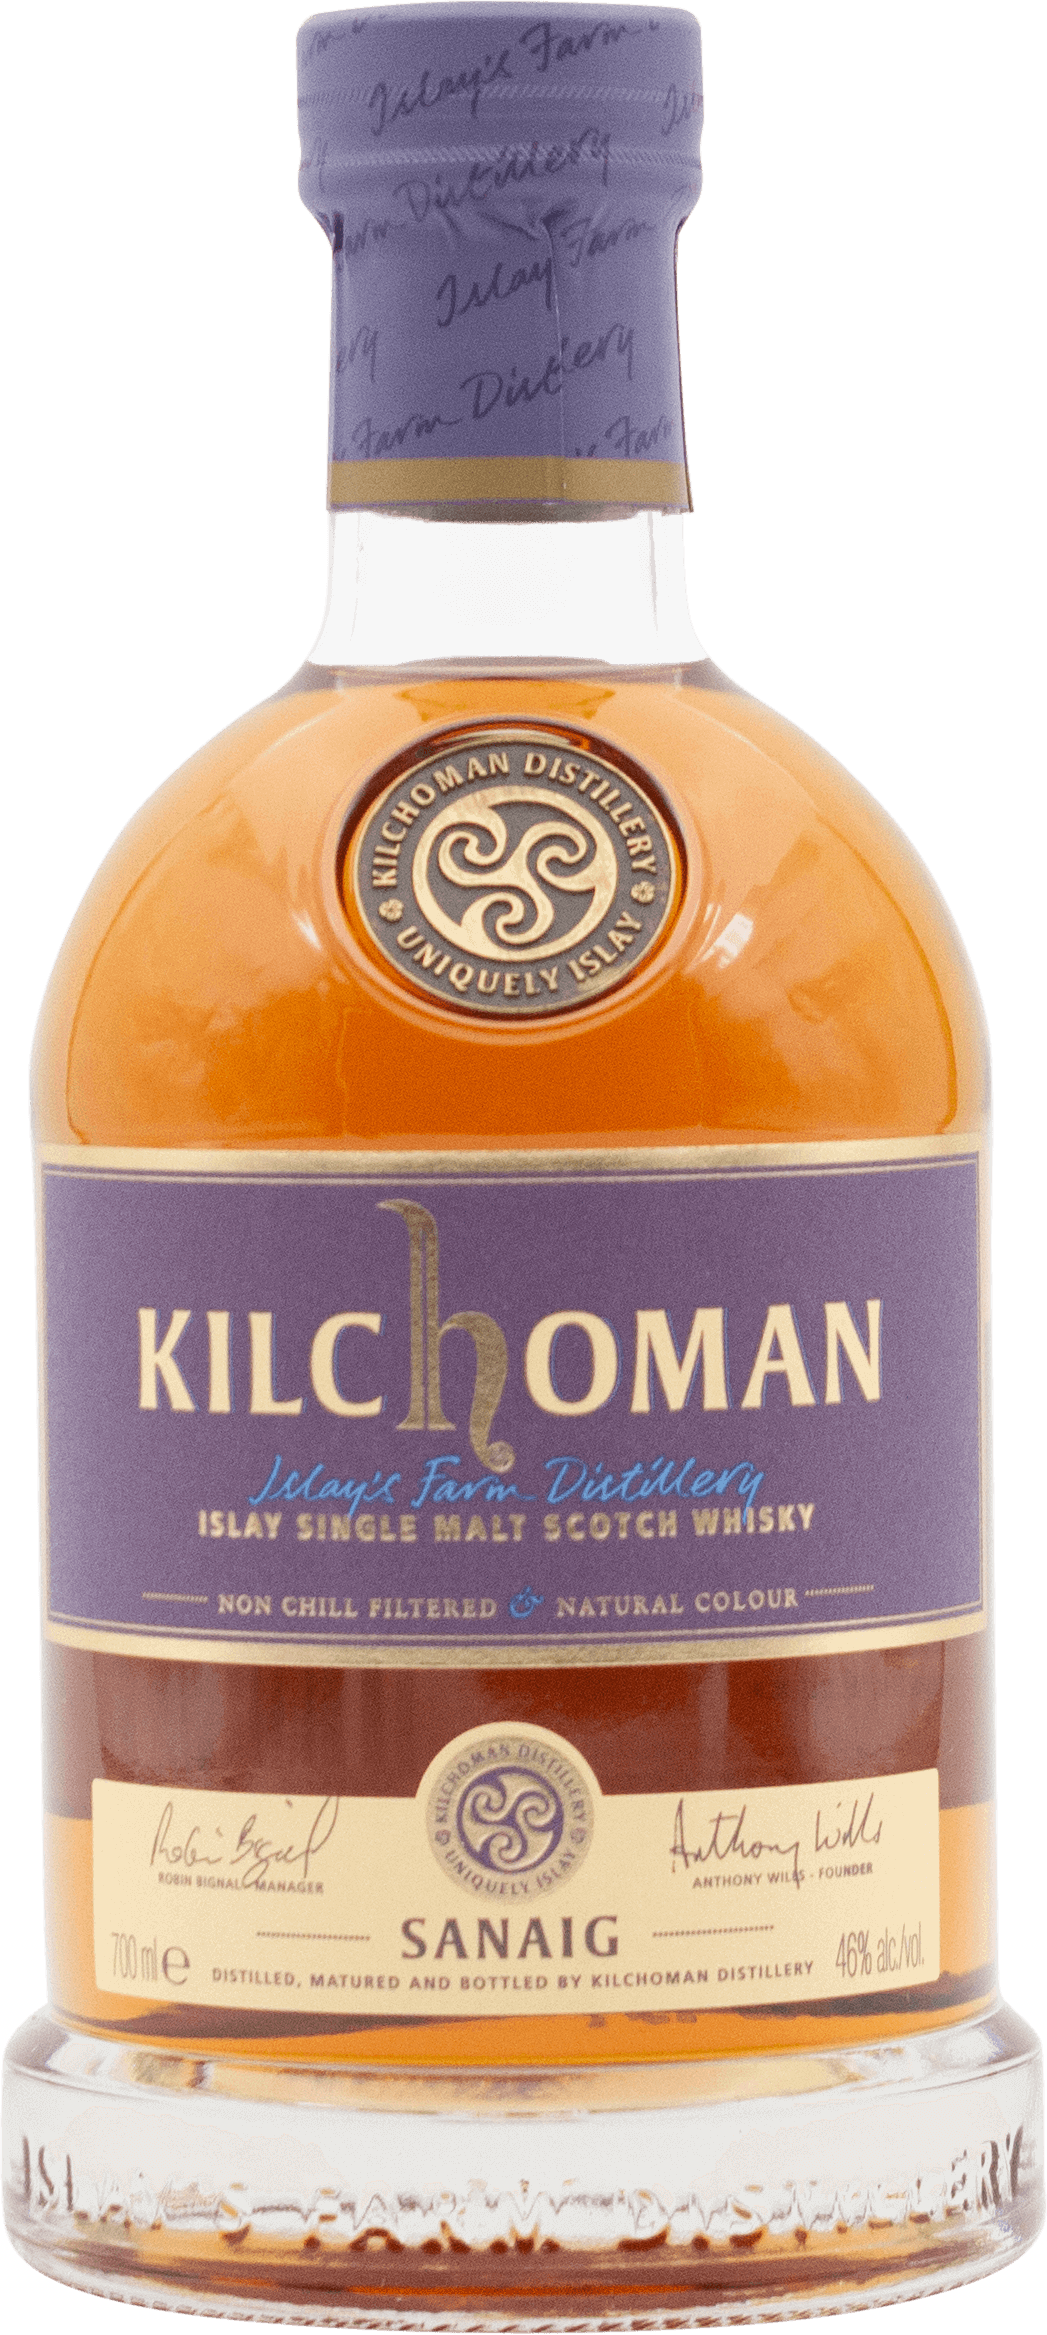 Kilchoman Sanaig Scotch Whisky